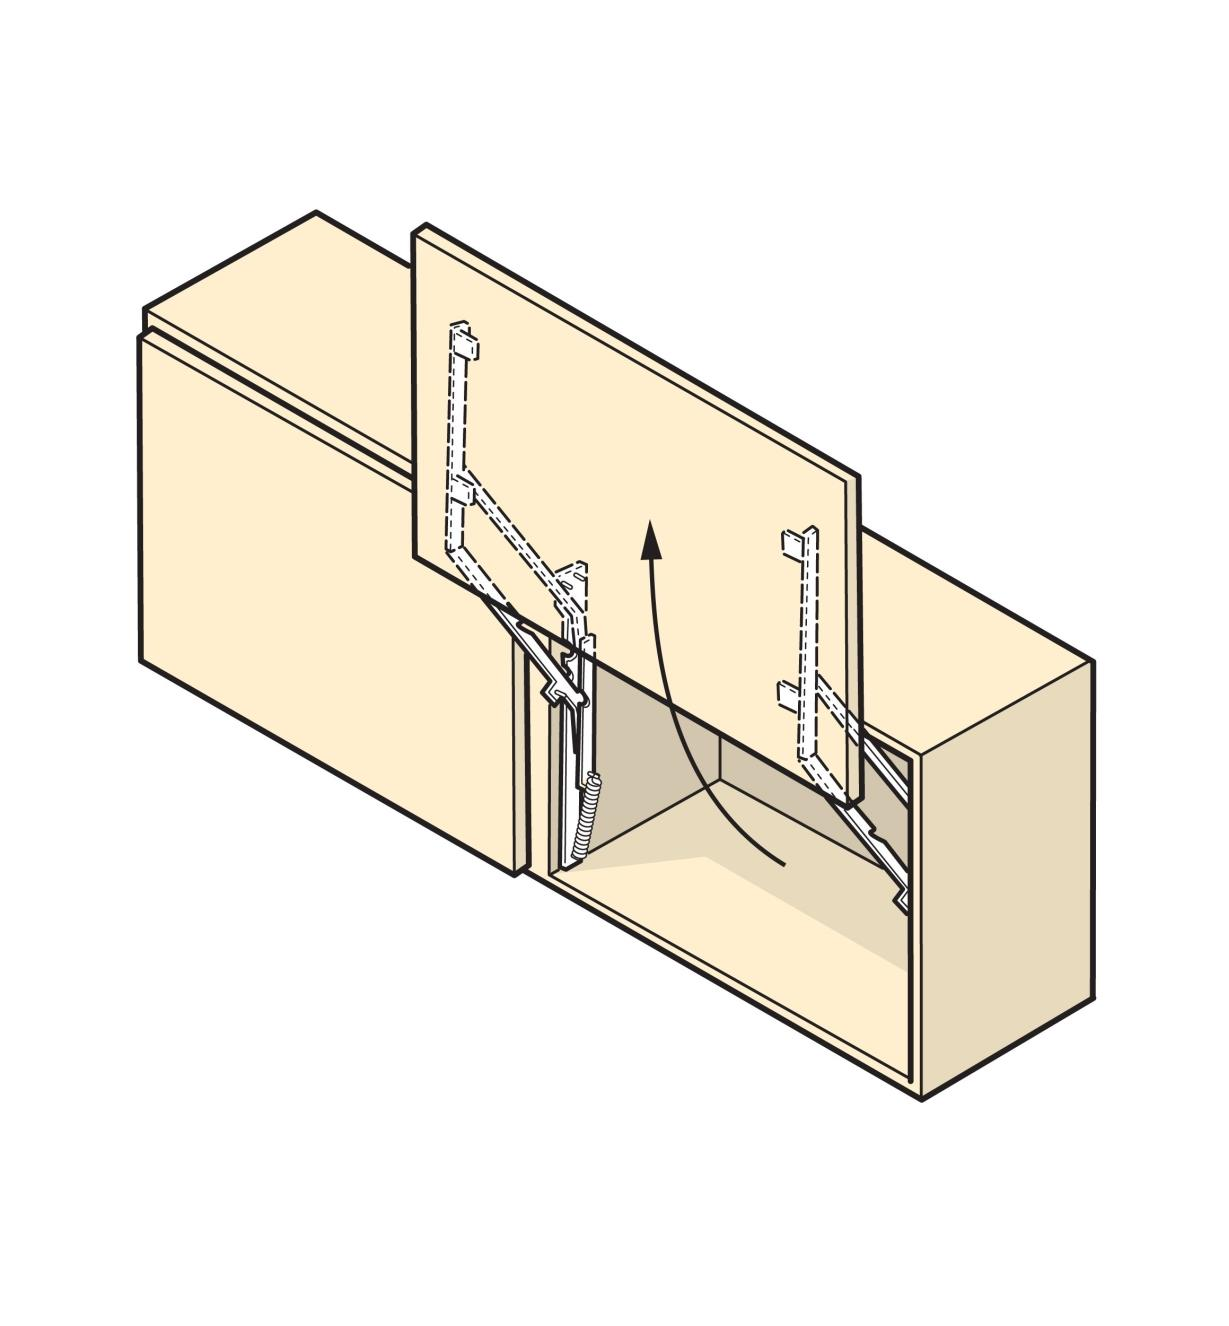 Illustration of a cabinet door that swings upward, made with Parallock brackets